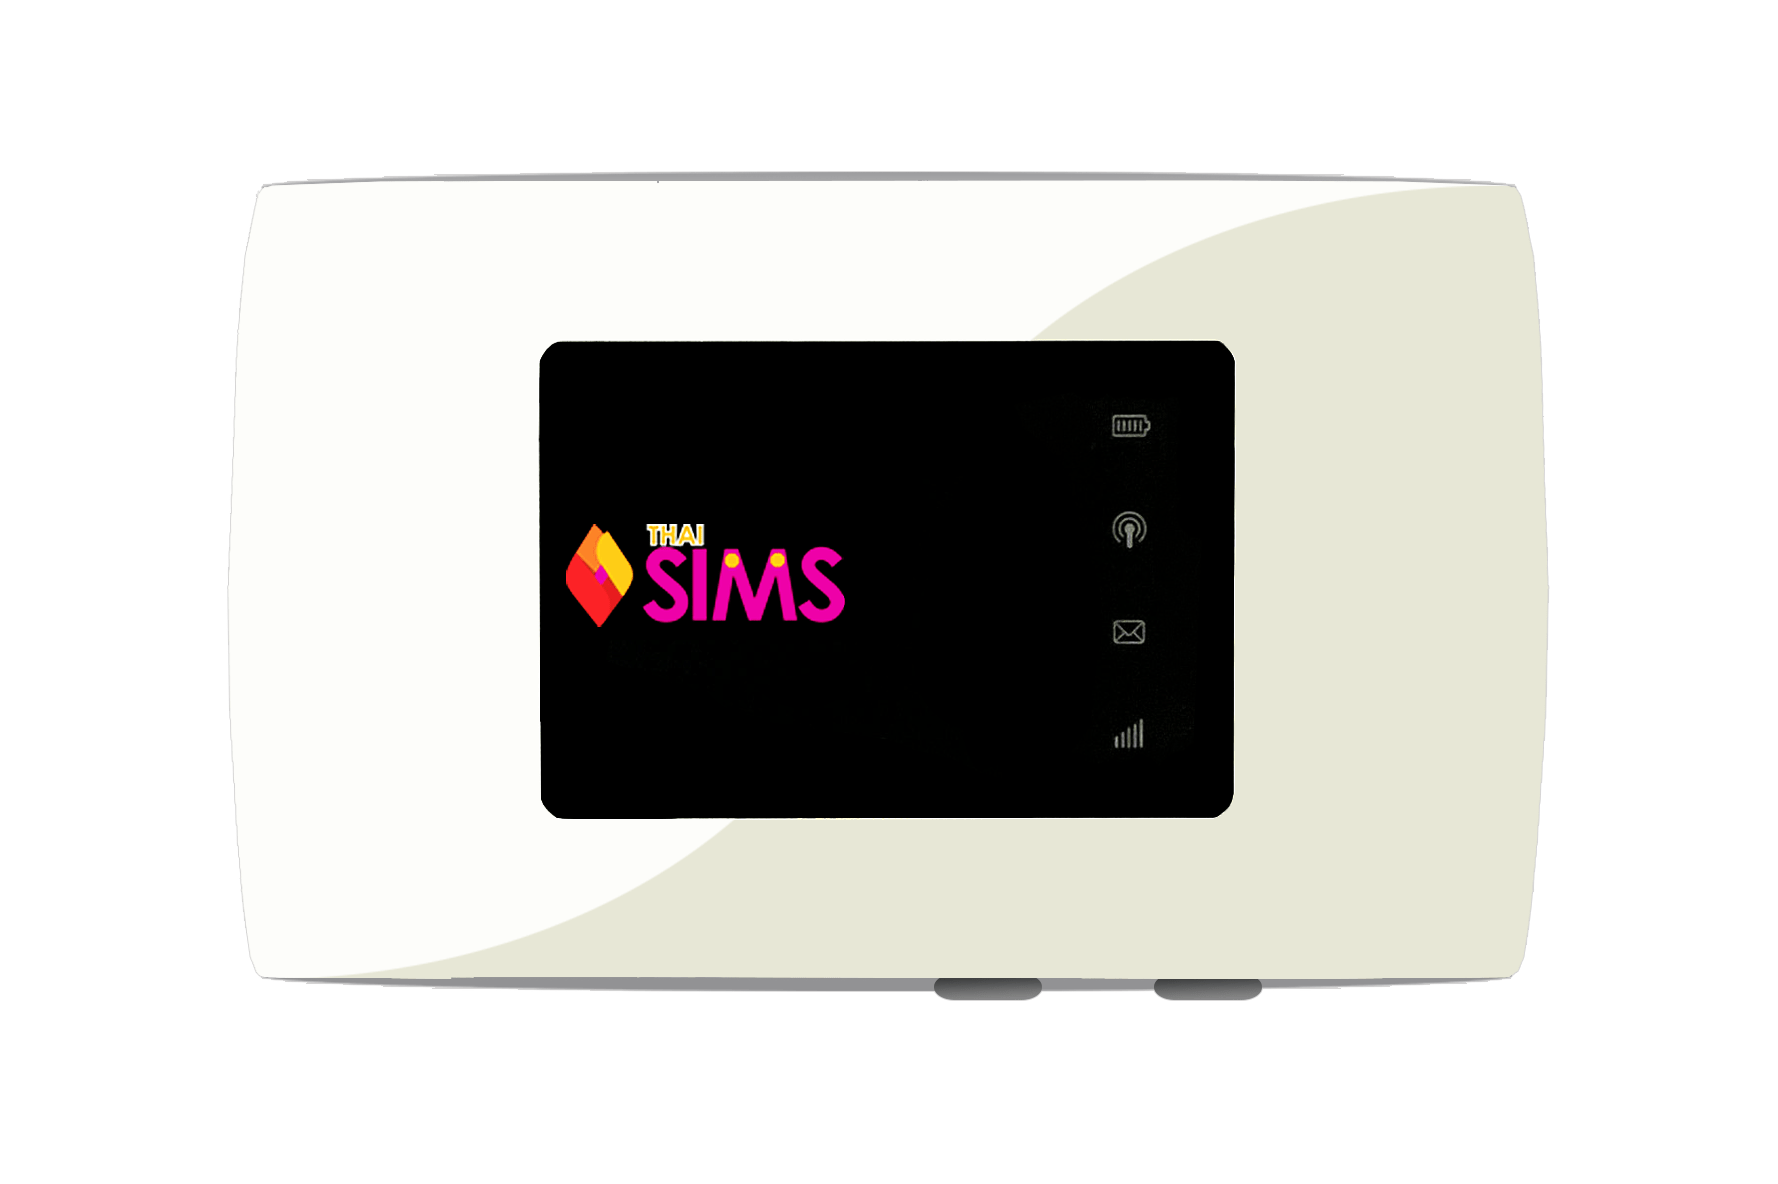 ThaiSims 4G Pocket WiFi Rental - Online Reservation